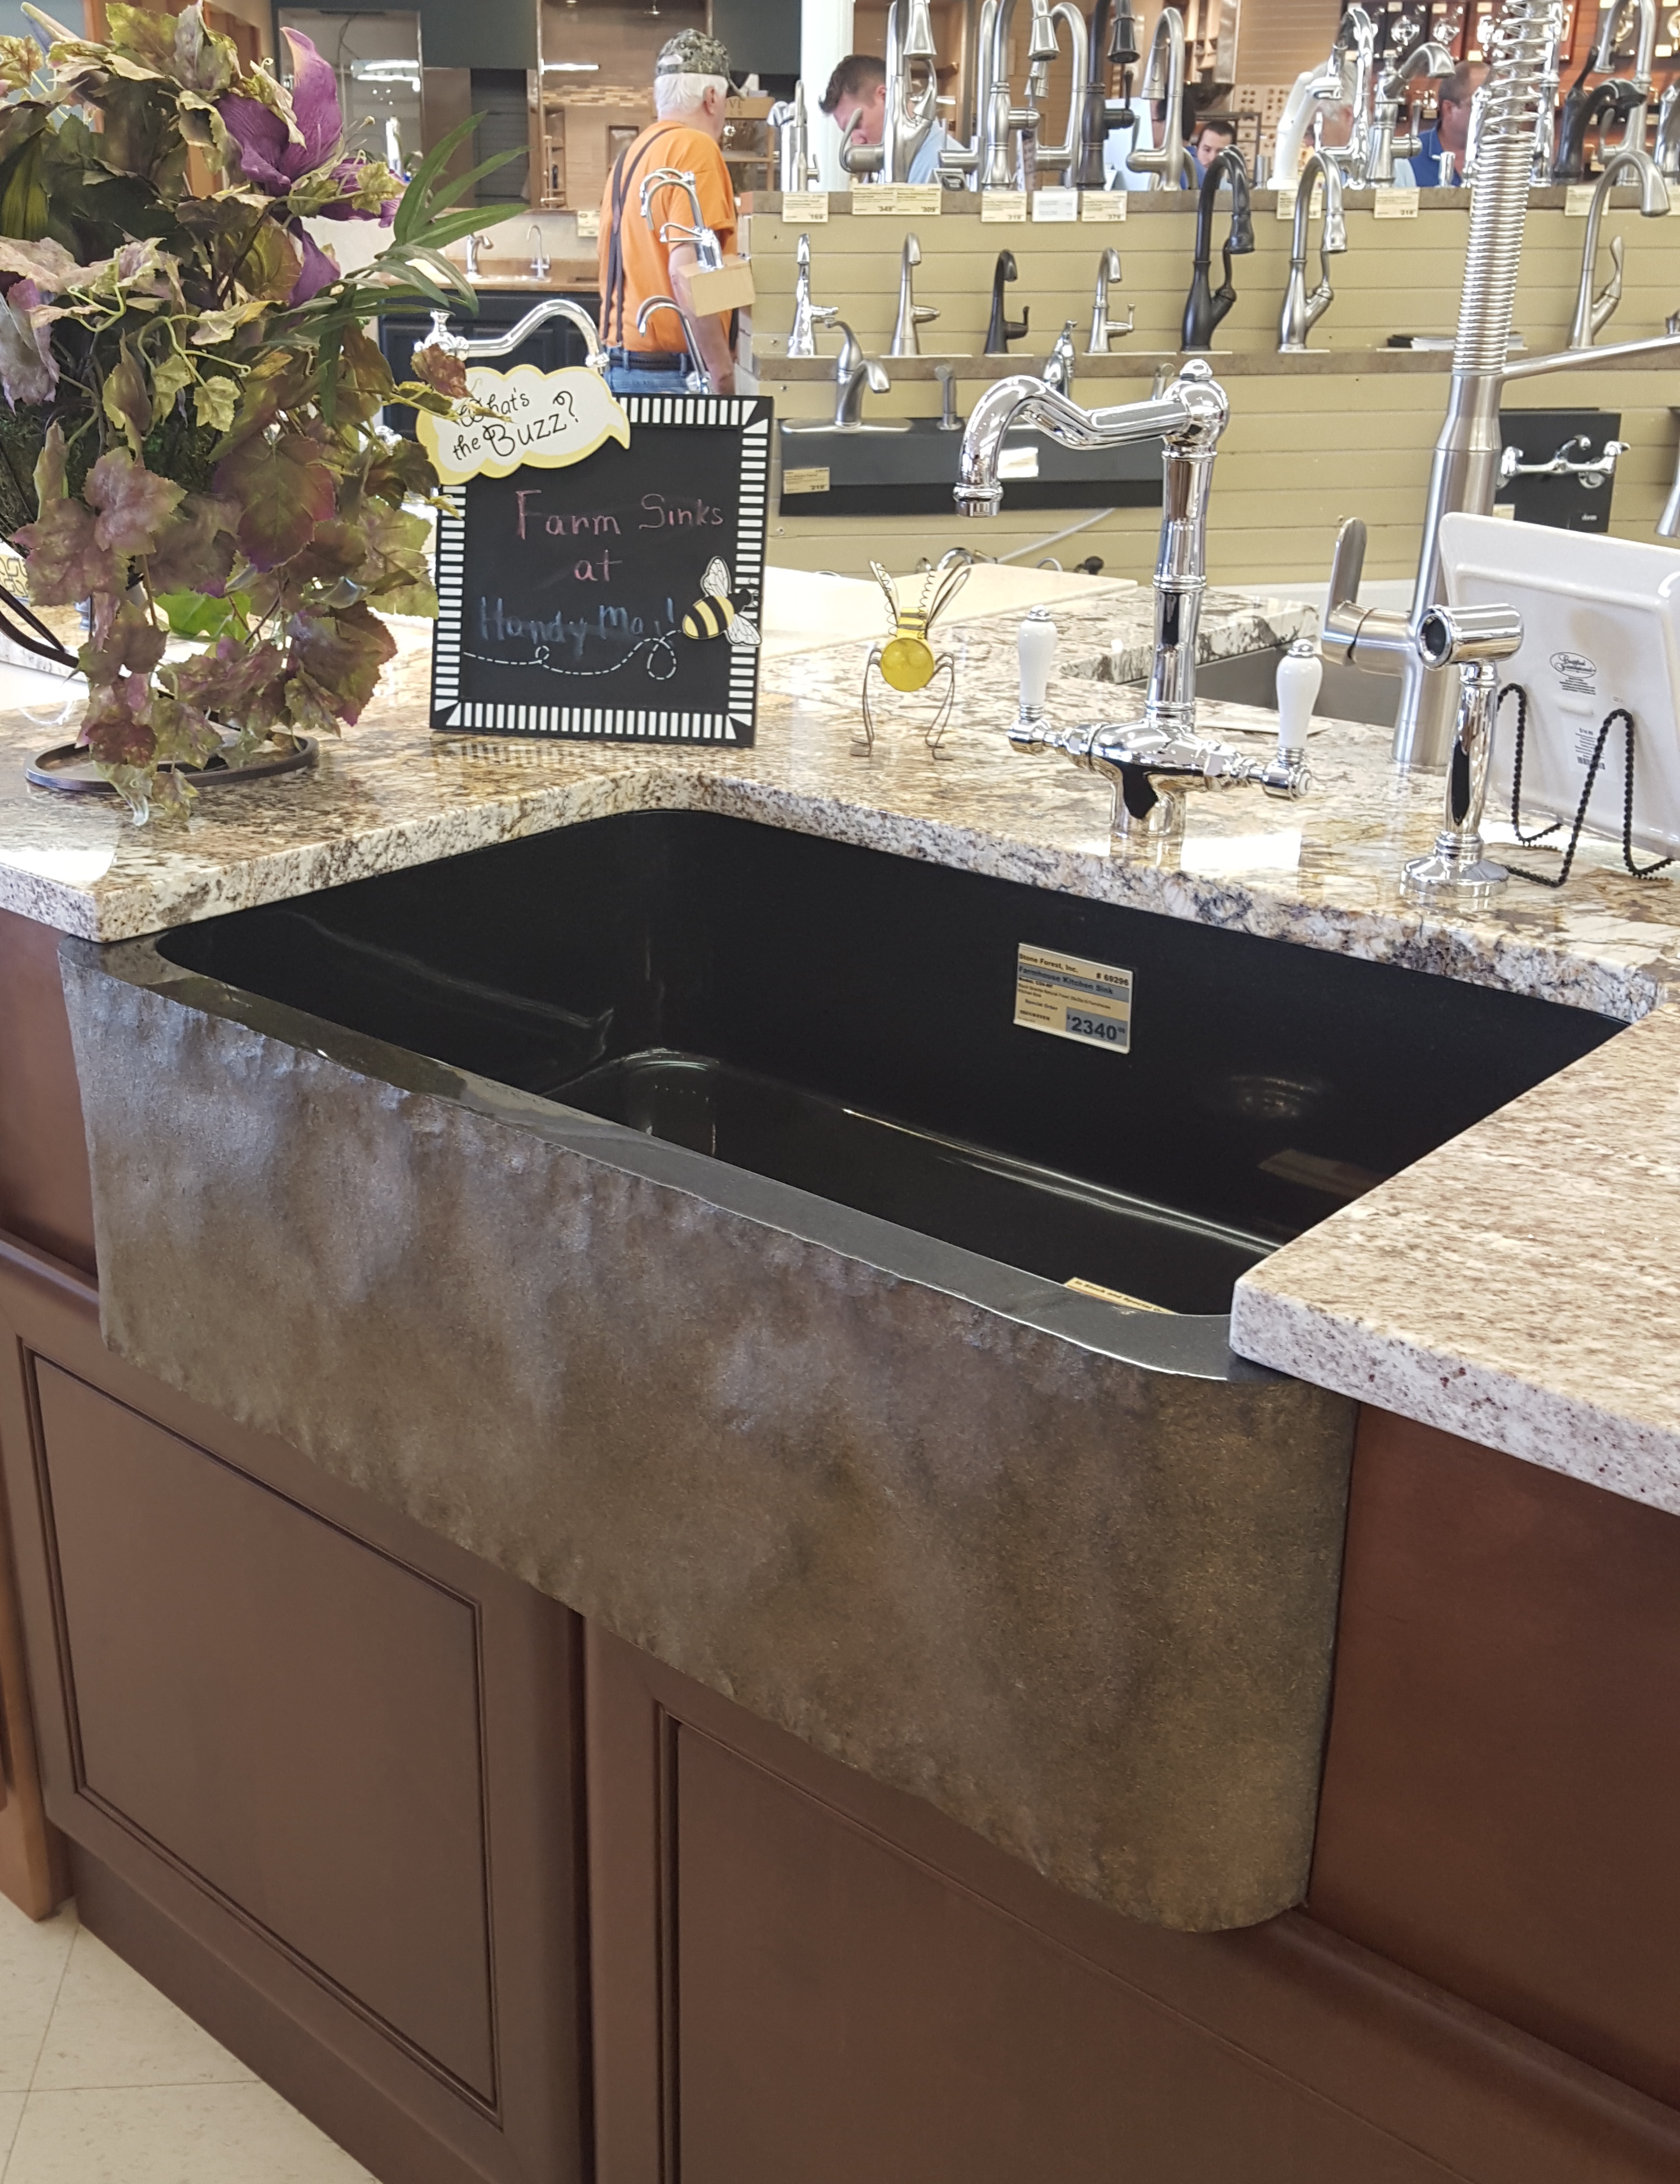 how to shop for your kitchen sink stone kitchen sink Stone yes solid rock is also an option for your kitchen sink Stone sinks are typically carved out of a single piece of rock giving your kitchen a